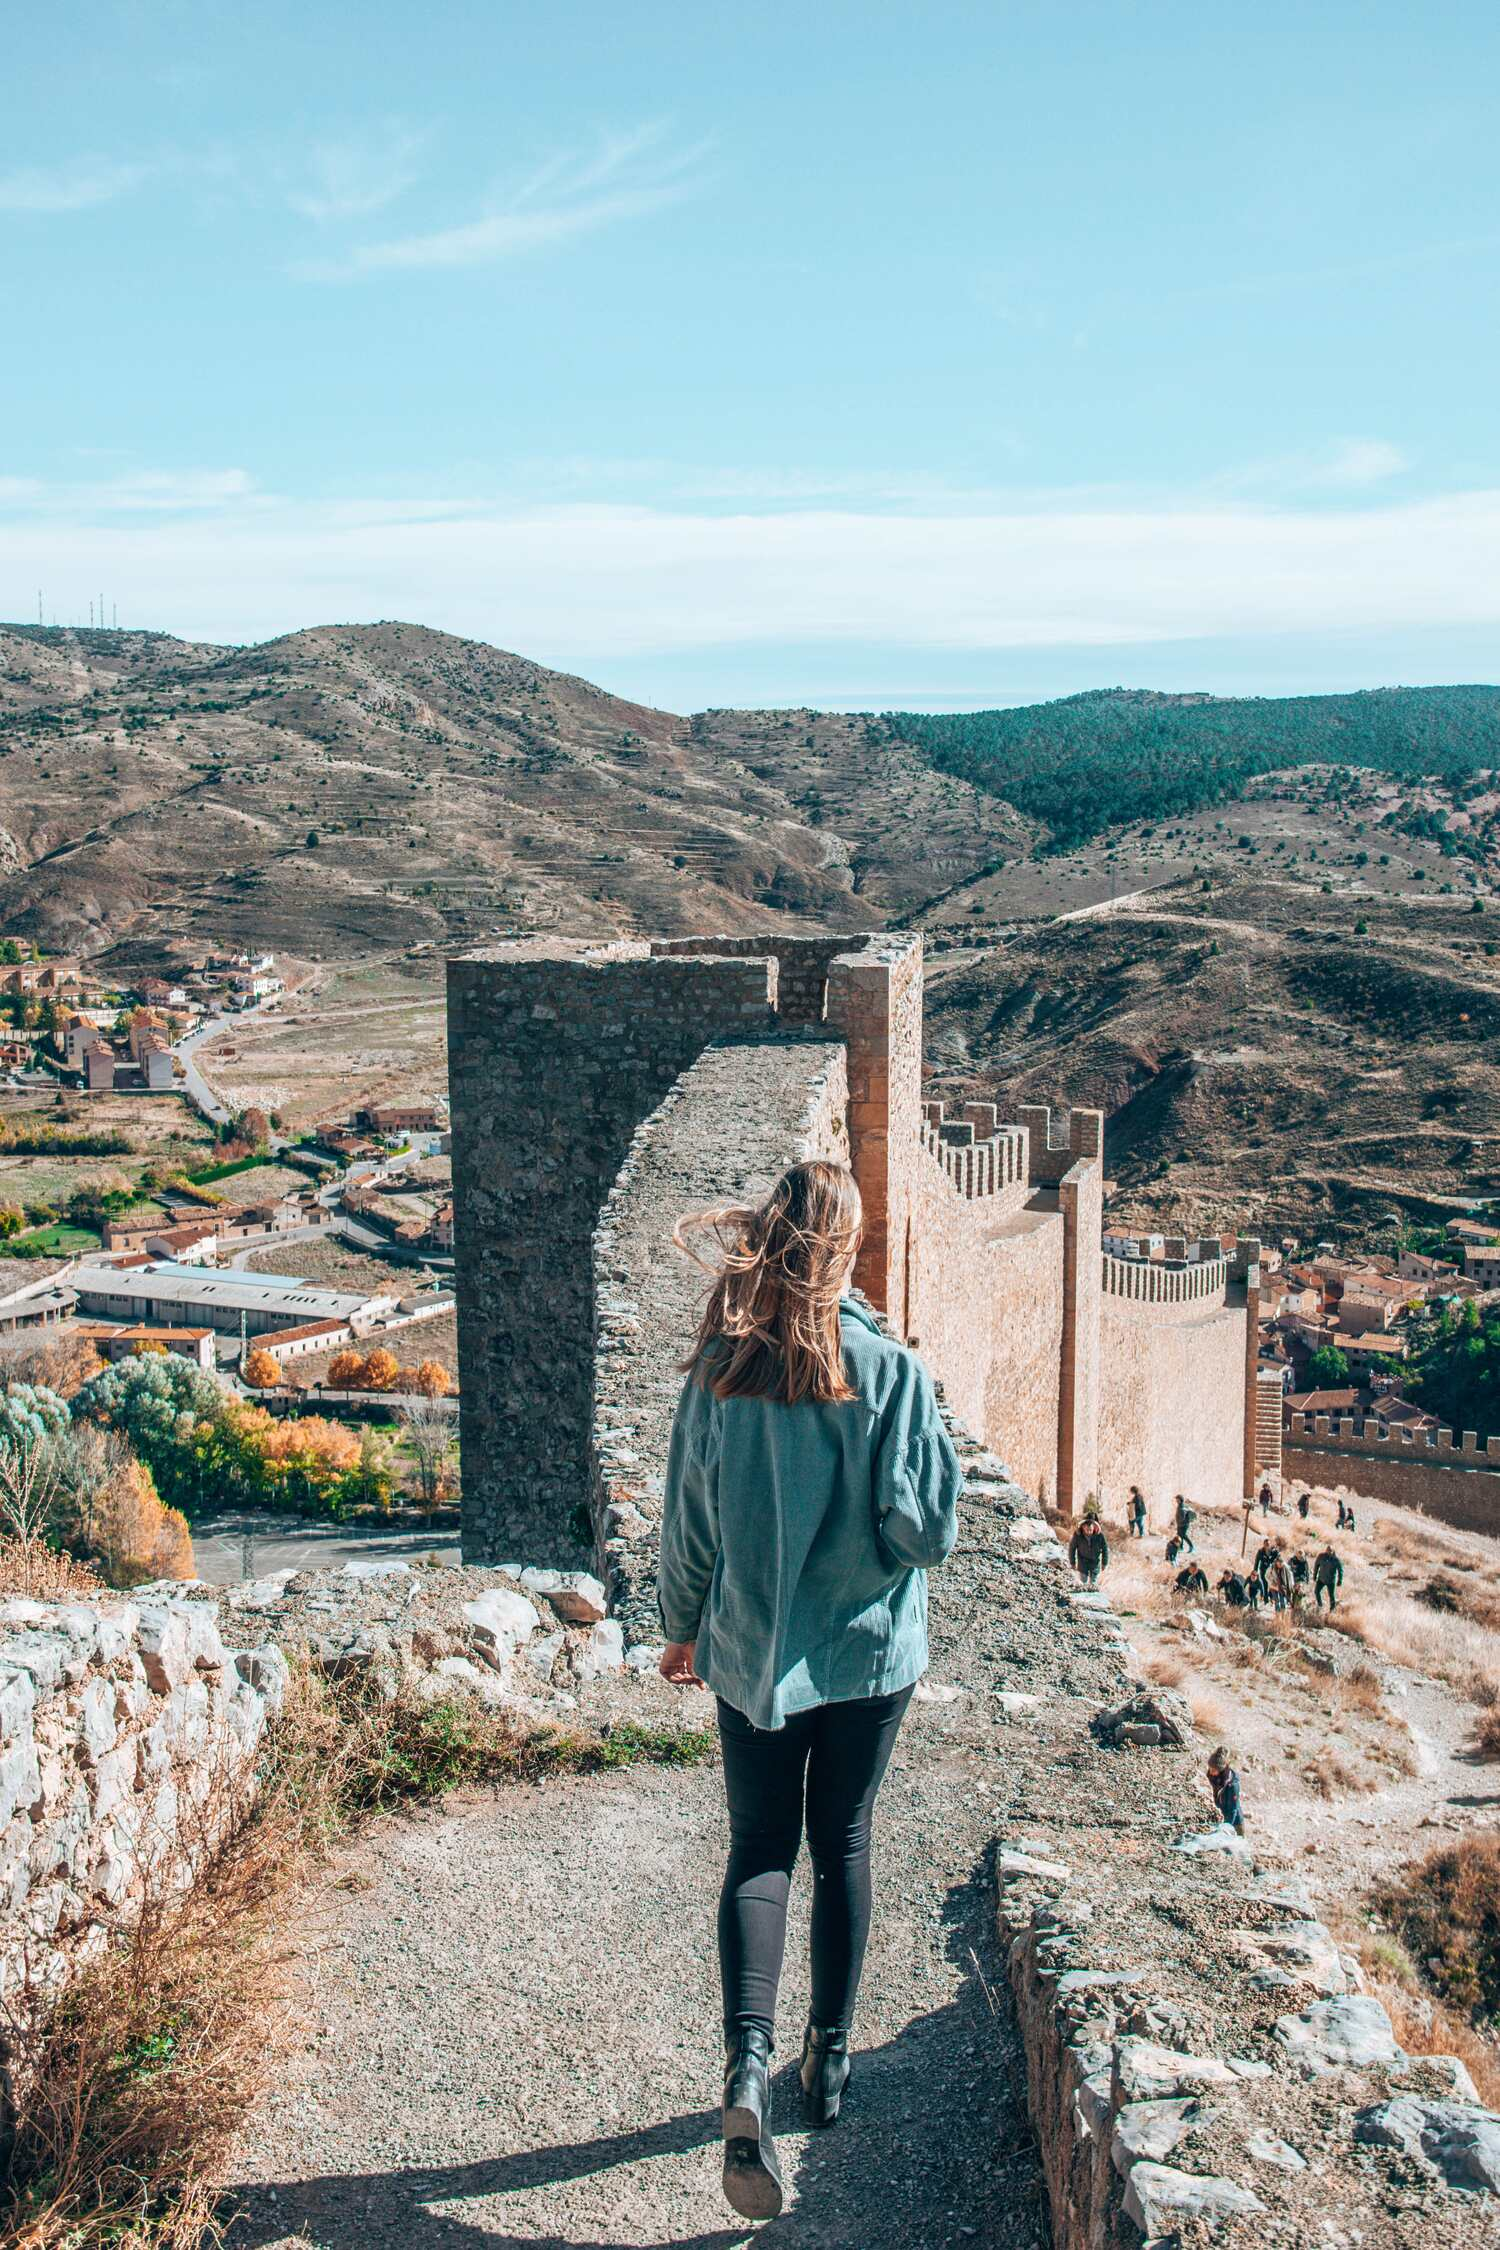 Walking the city wall above of the enchanting city Albarracin in Spain.